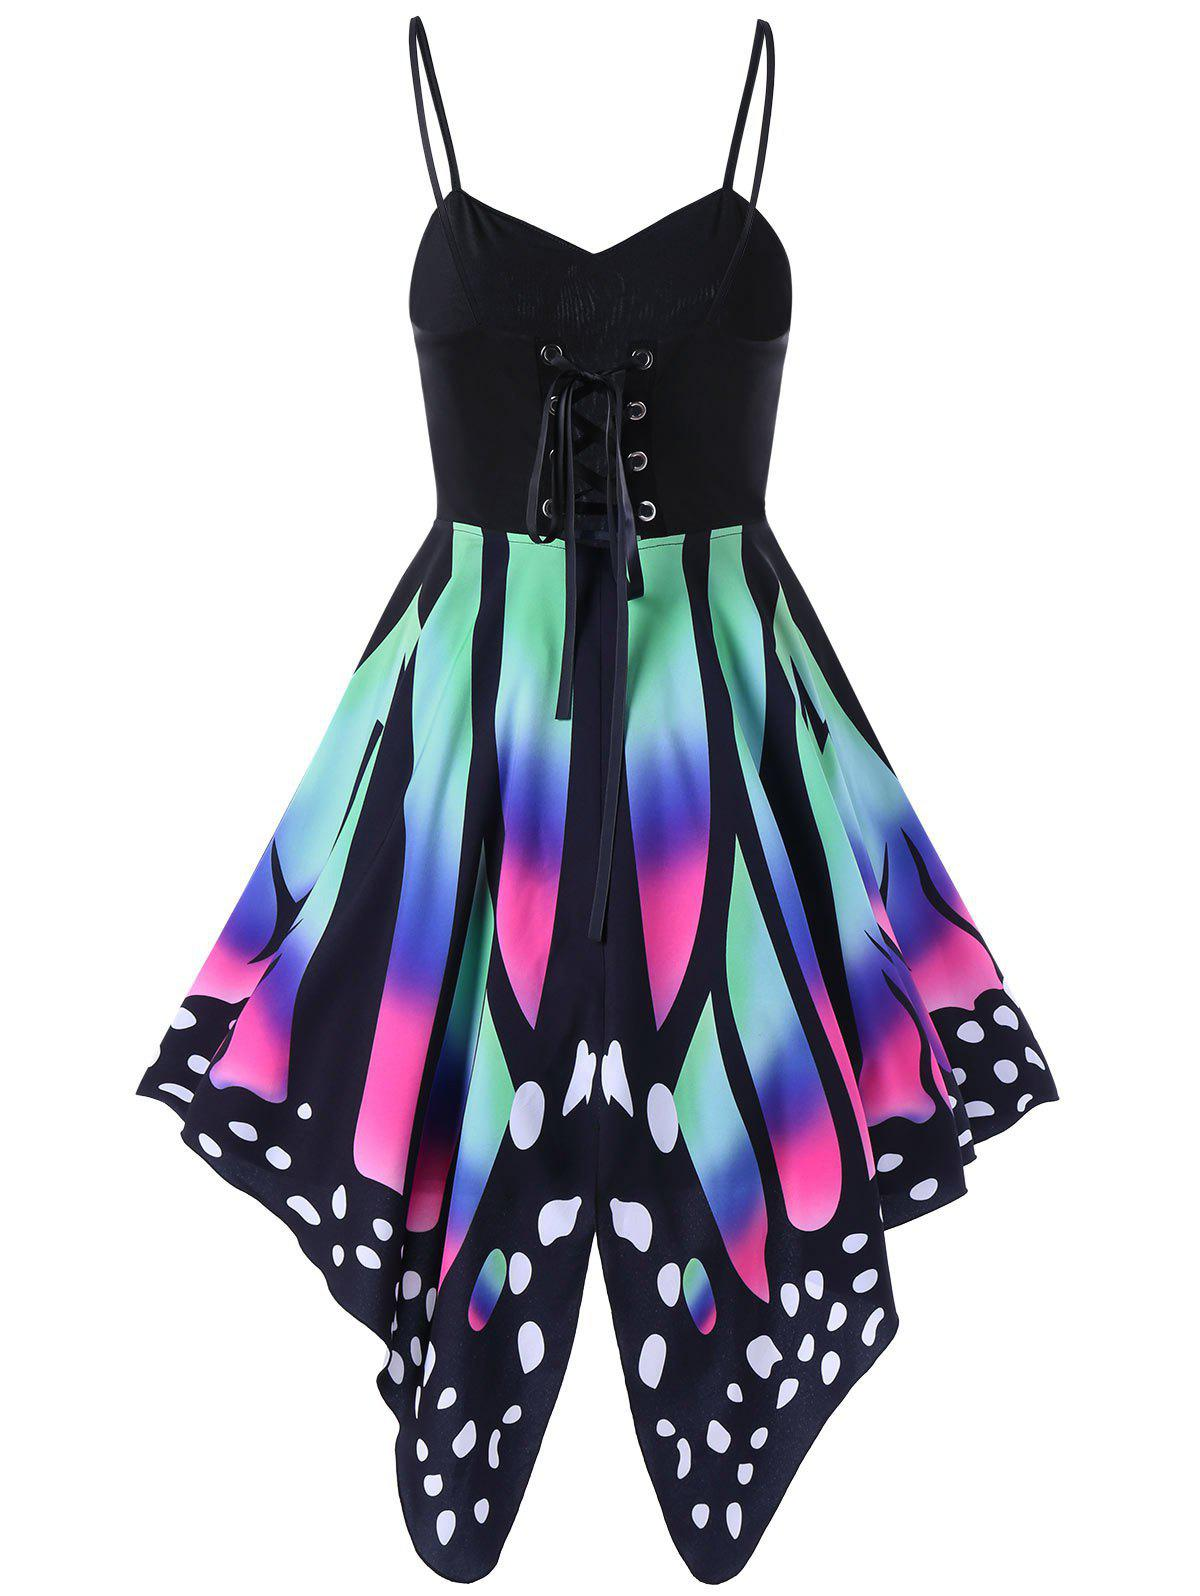 Affordable Women's Butterfly Shape Print   Summer Strapy Lace Up Back Skater Dress  A-Line dress